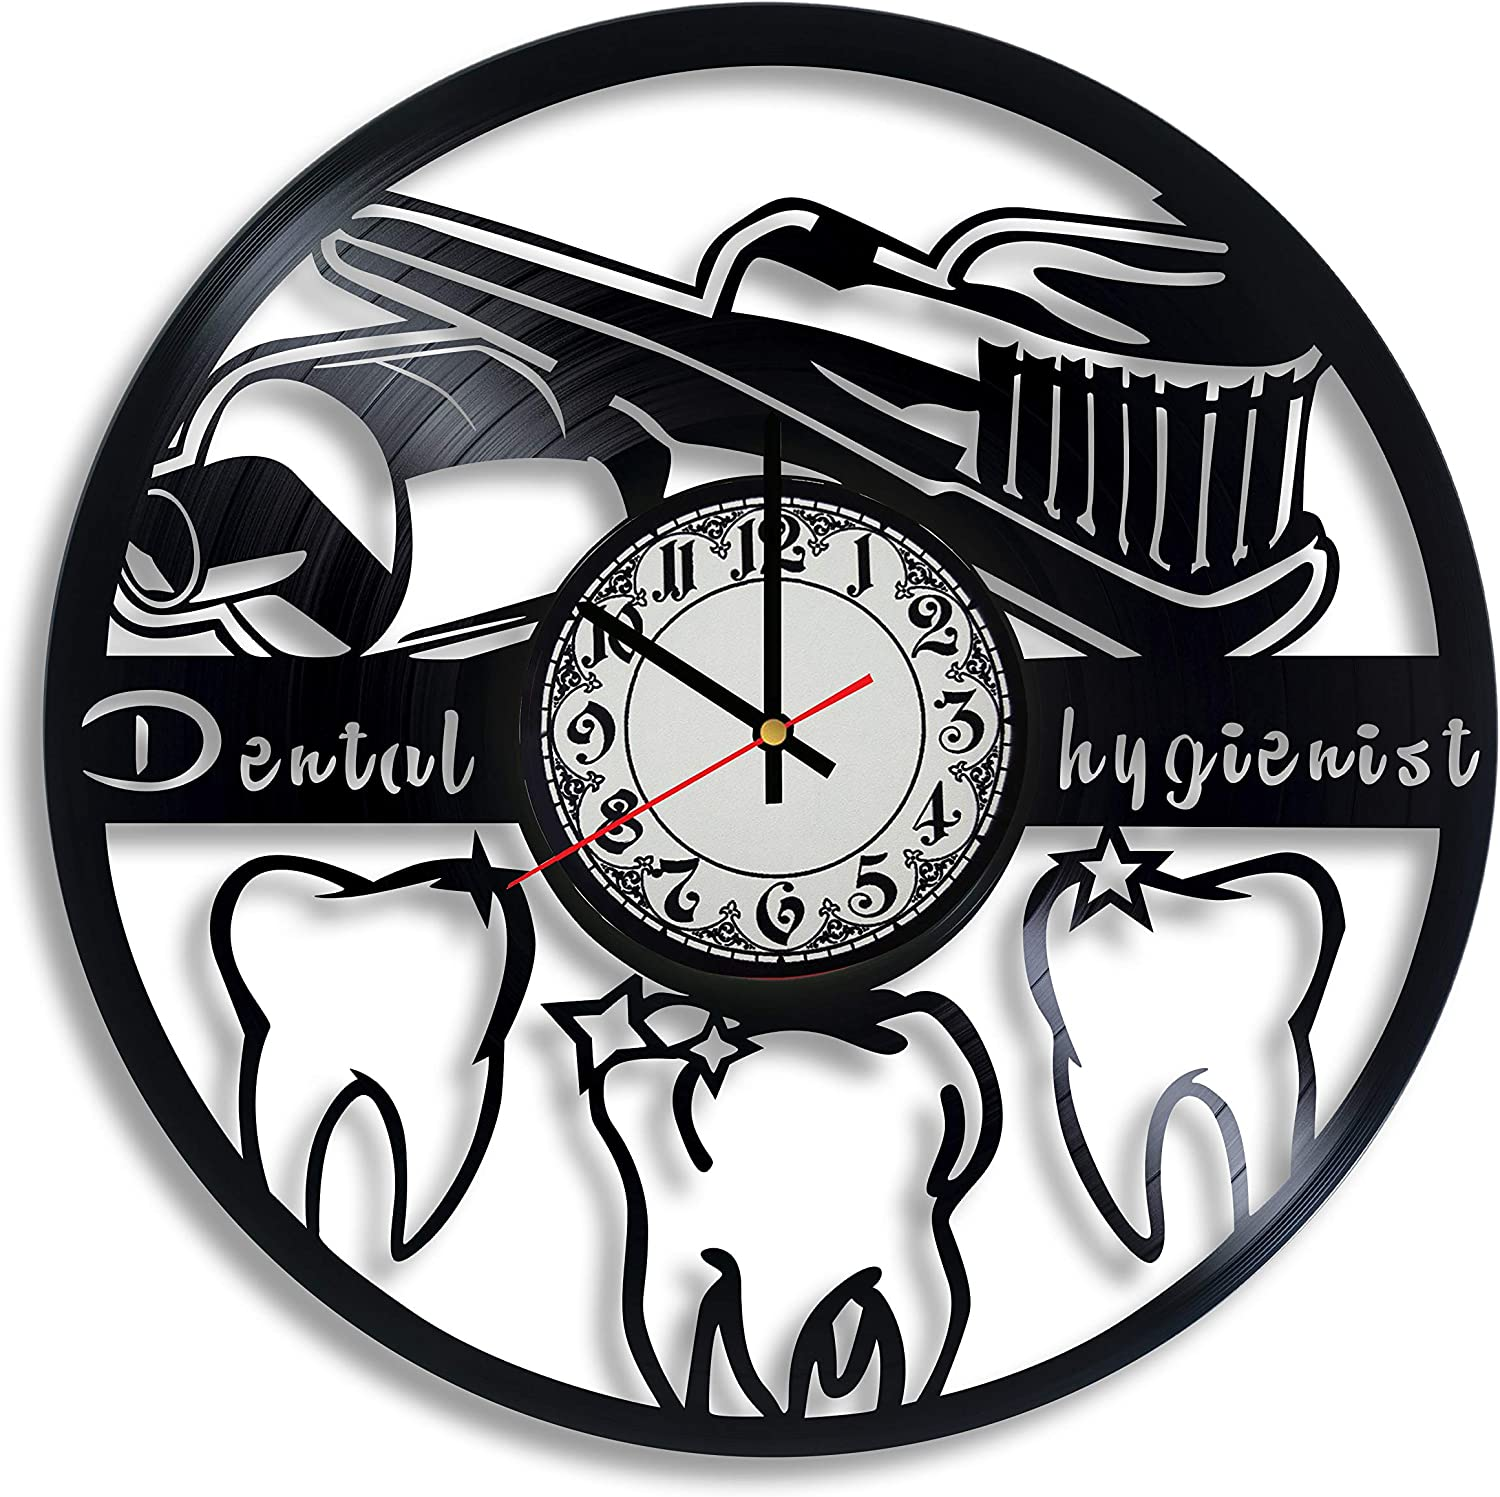 Lepri4ok Dental Hygienist Vinyl Record Wall Clock, Dental Hygienist Gift for Any Occasion, Dentist Office Decor, Orthodontics Art